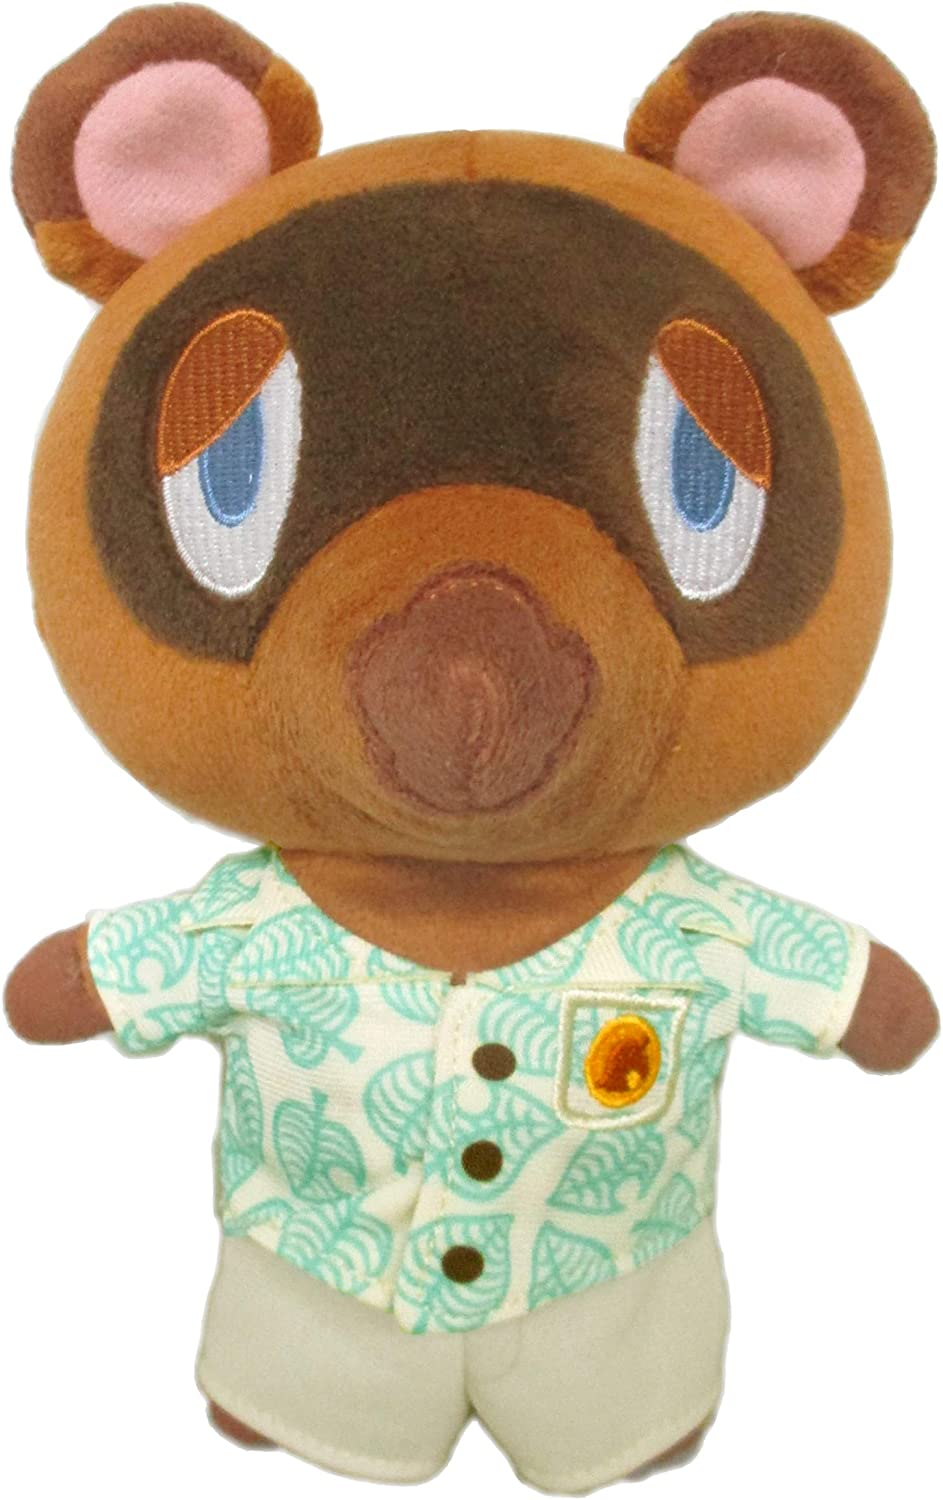 Little Buddy 1793 Animal Crossing - New Horizons - Tom Nook Plush, 8""